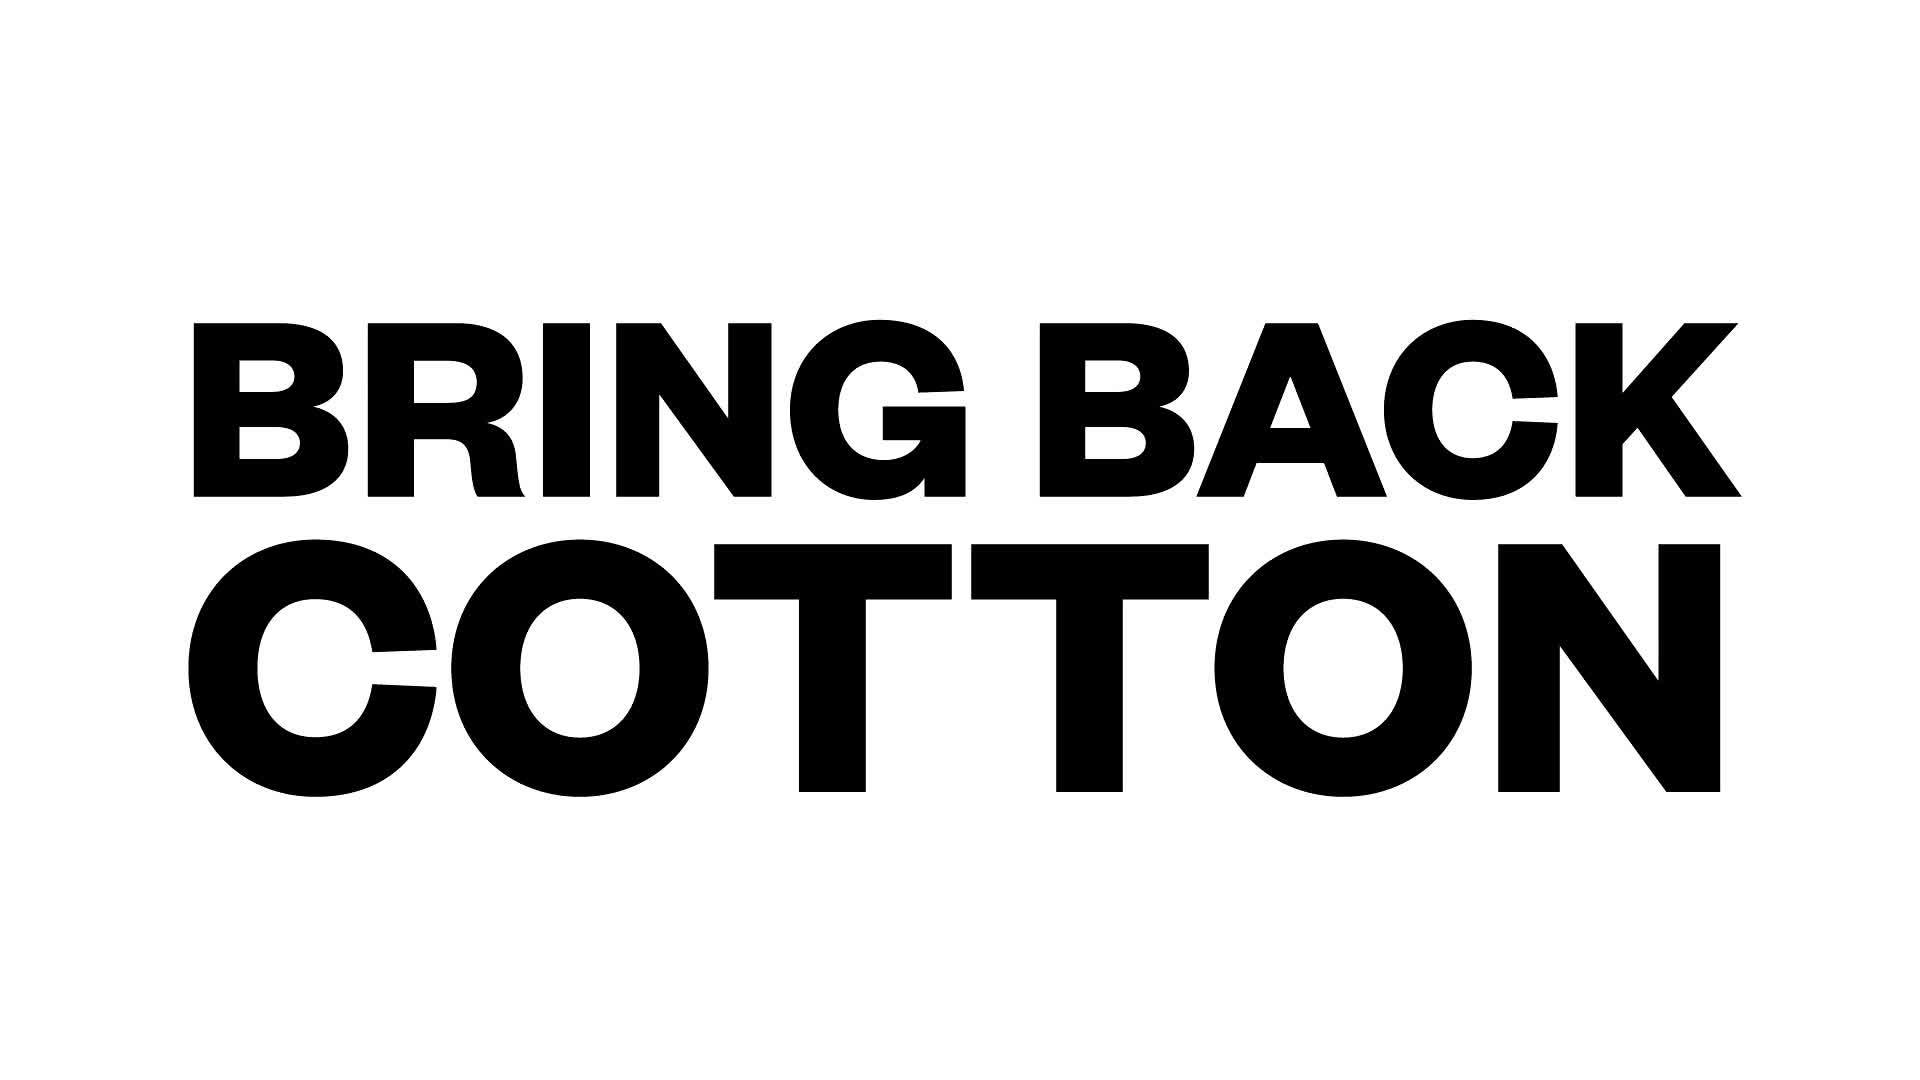 Bring Back Cotton